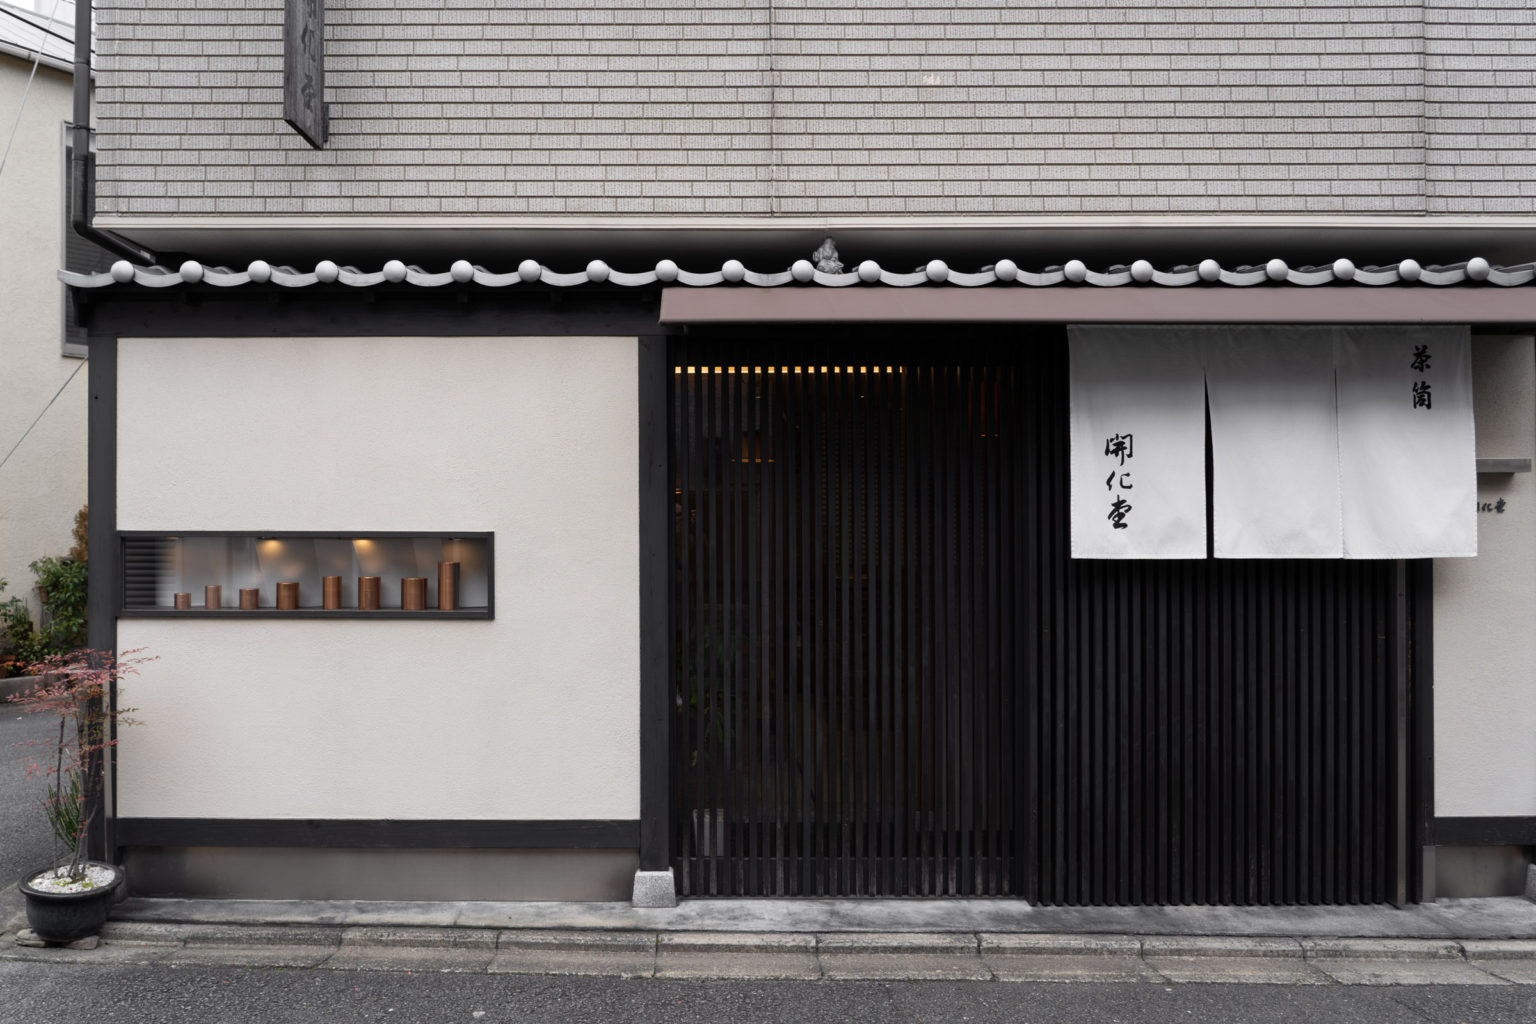 Kyoto City Guide — The best cafes, restaurants, bars and hotels in Kyoto Japan — Softer Volumes